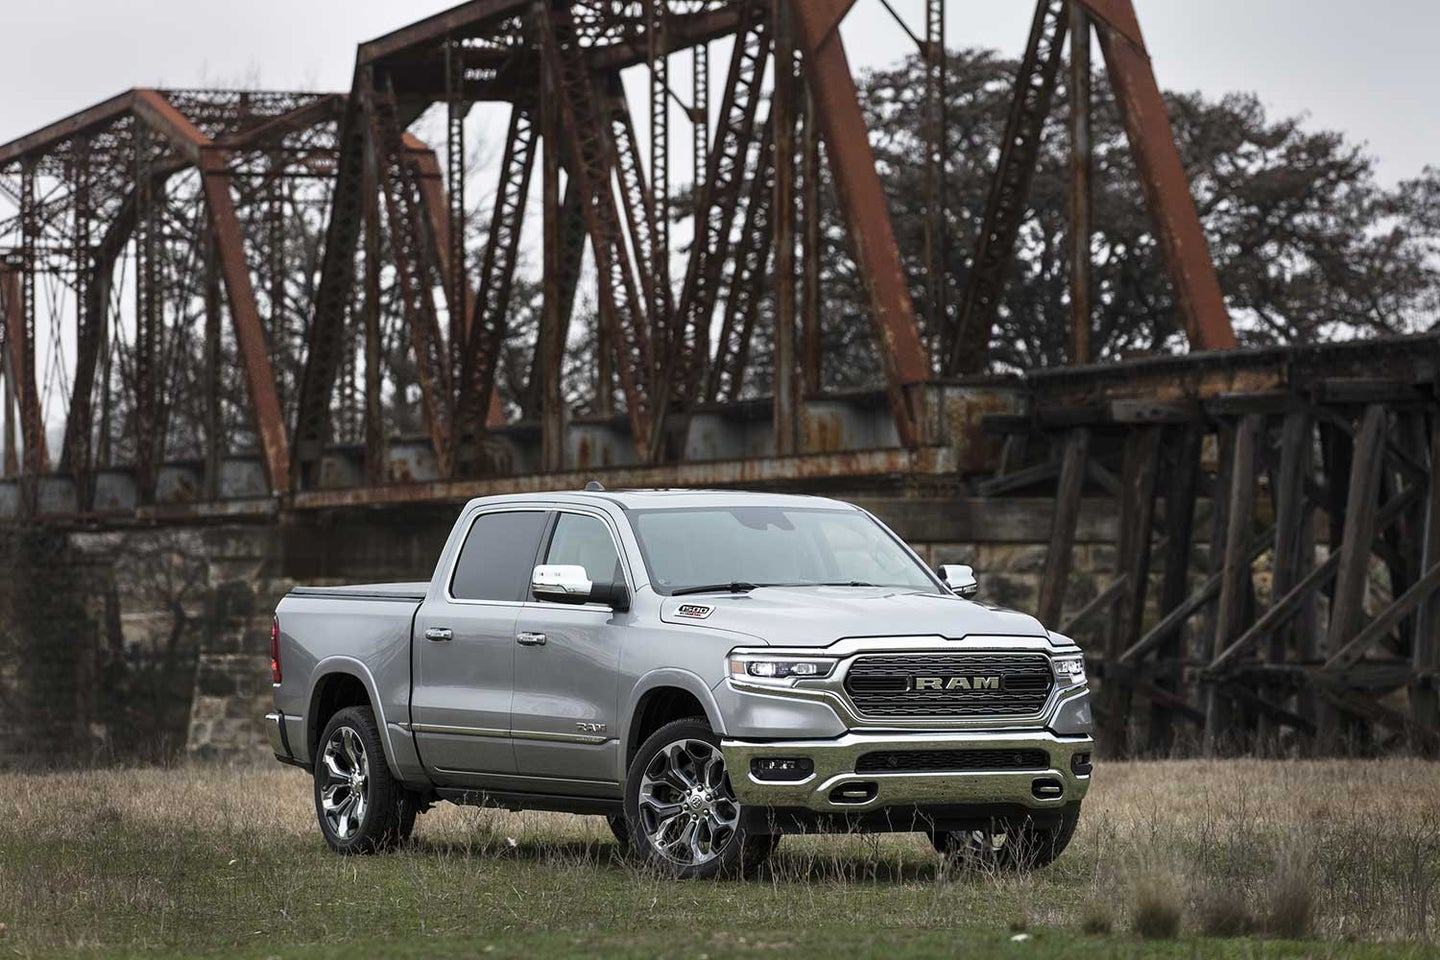 First Look: Ram 1500 EcoDiesel Limited Crew Cab 1500 4×4